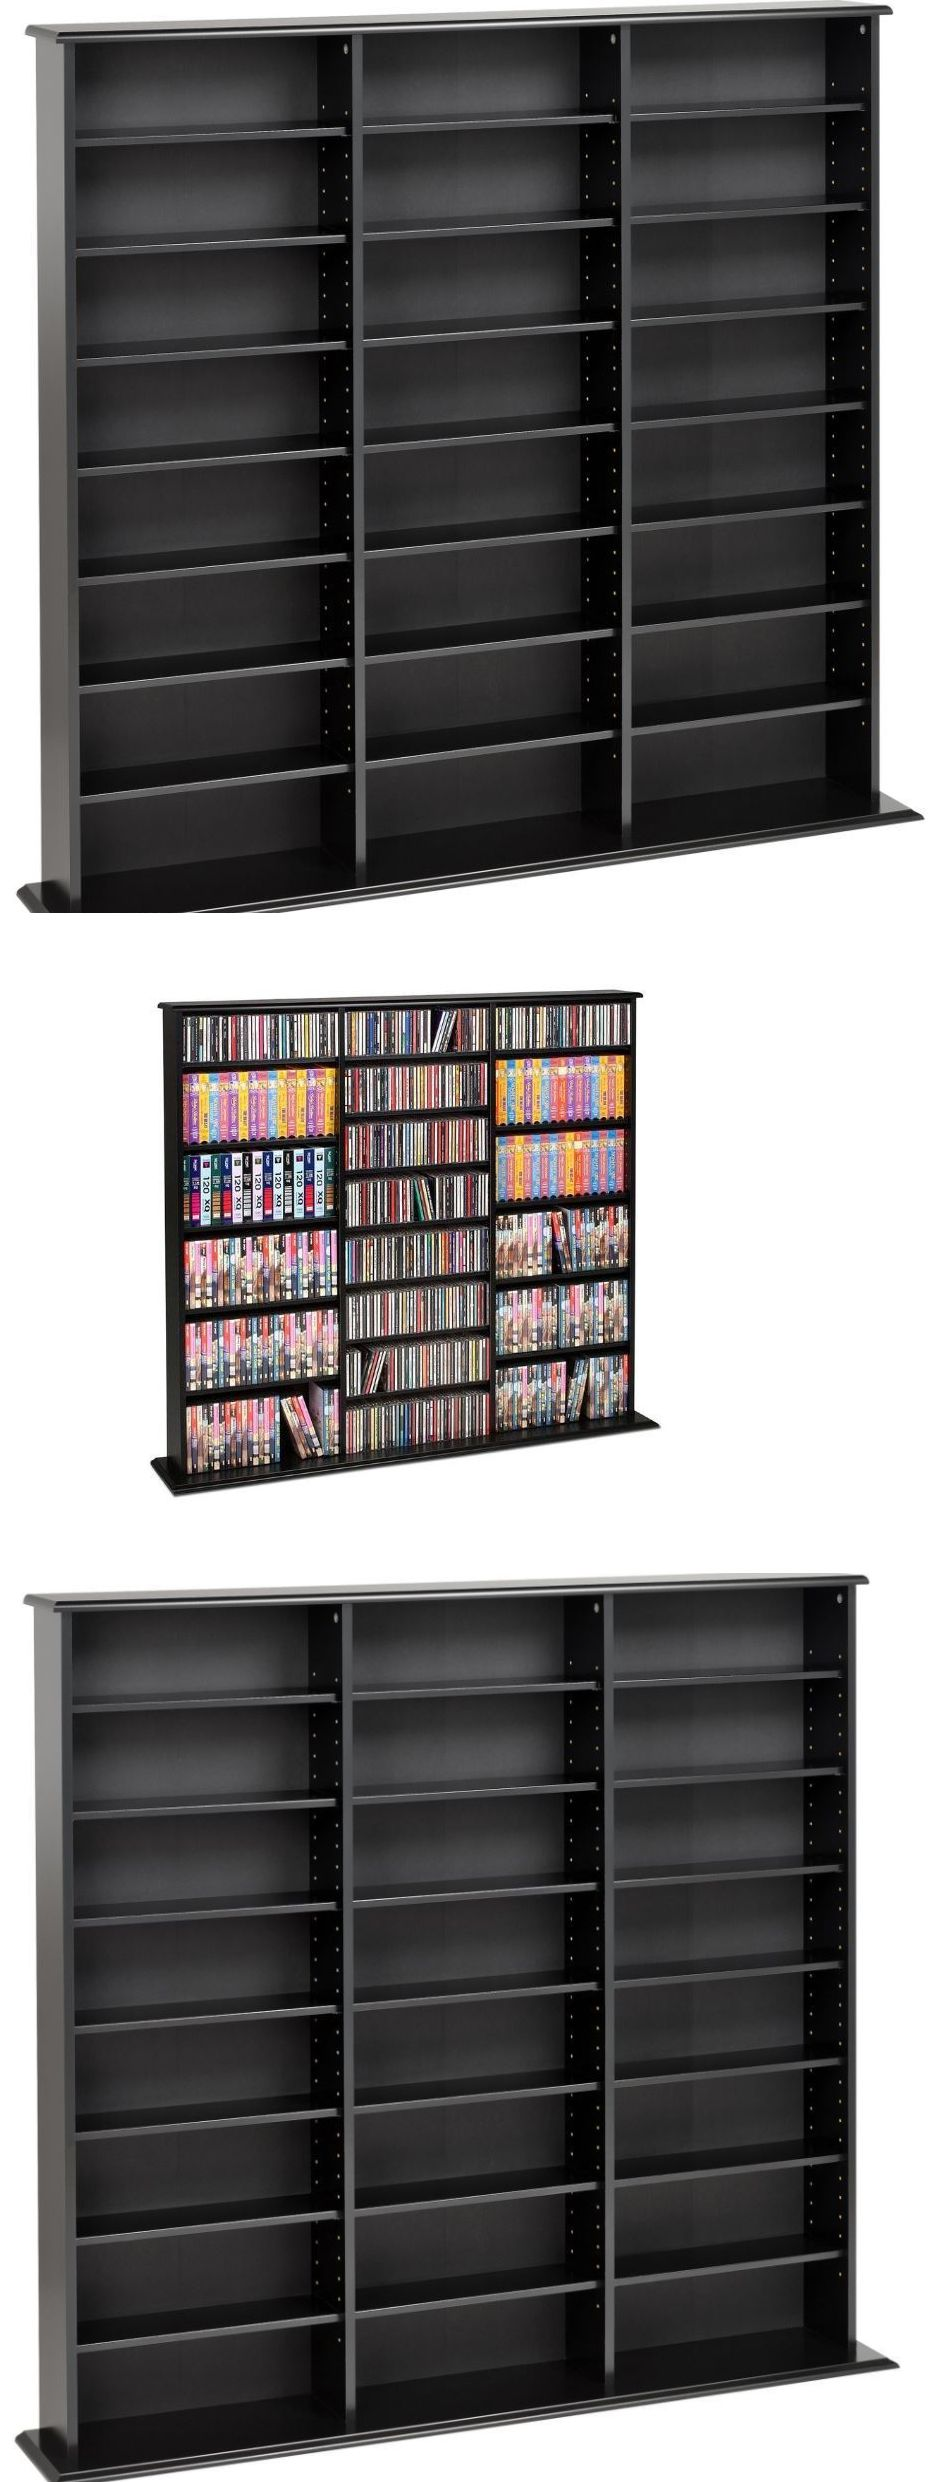 s shelf framed heal and cd white seletti drawers pin storage dvd office